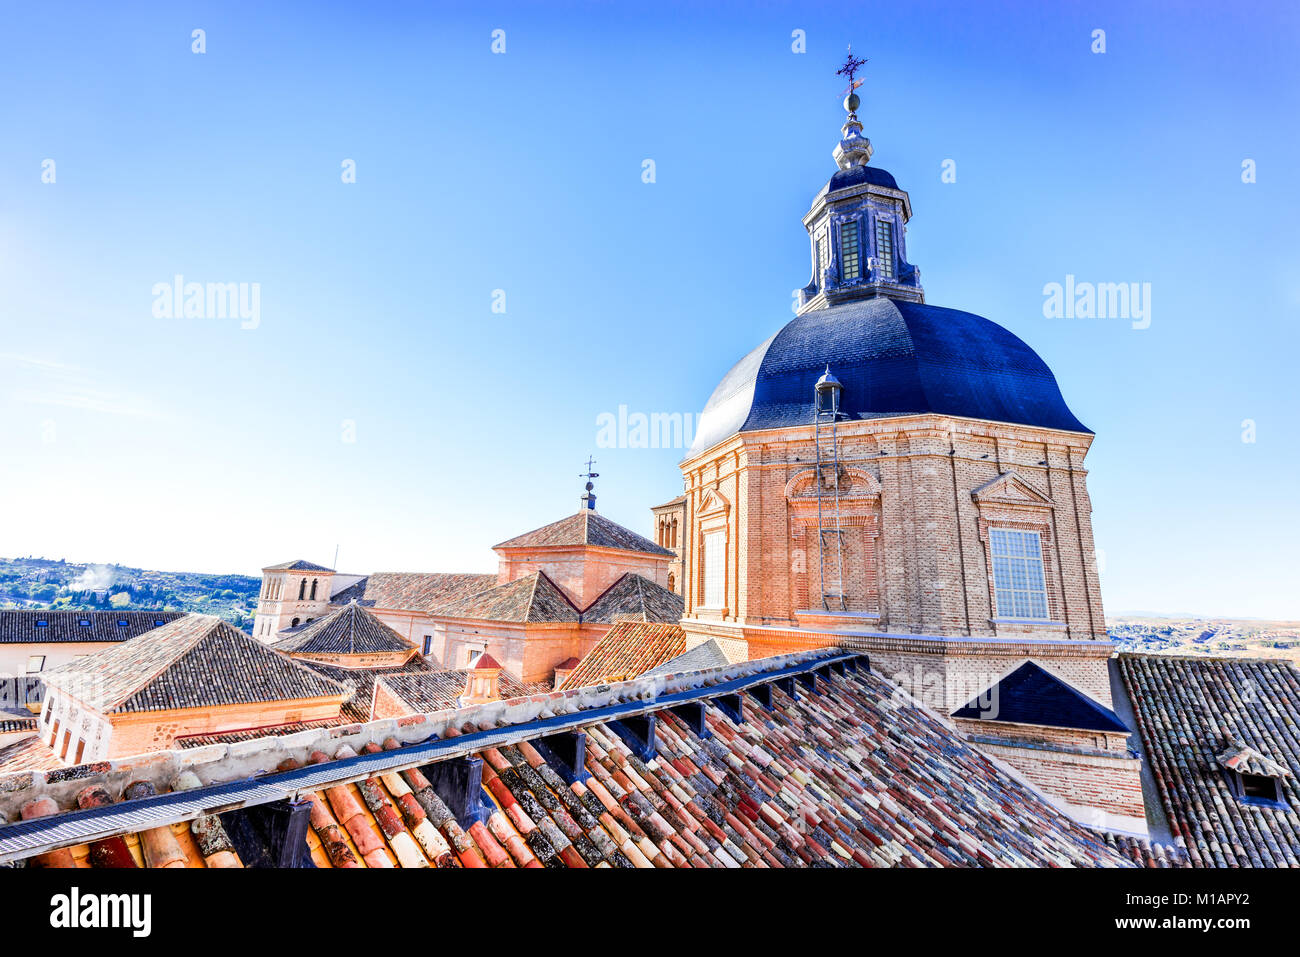 Toledo, Spain. View from tower of Jesuit Church, dedicated to San Ildefonso built in XVIIth century. - Stock Image